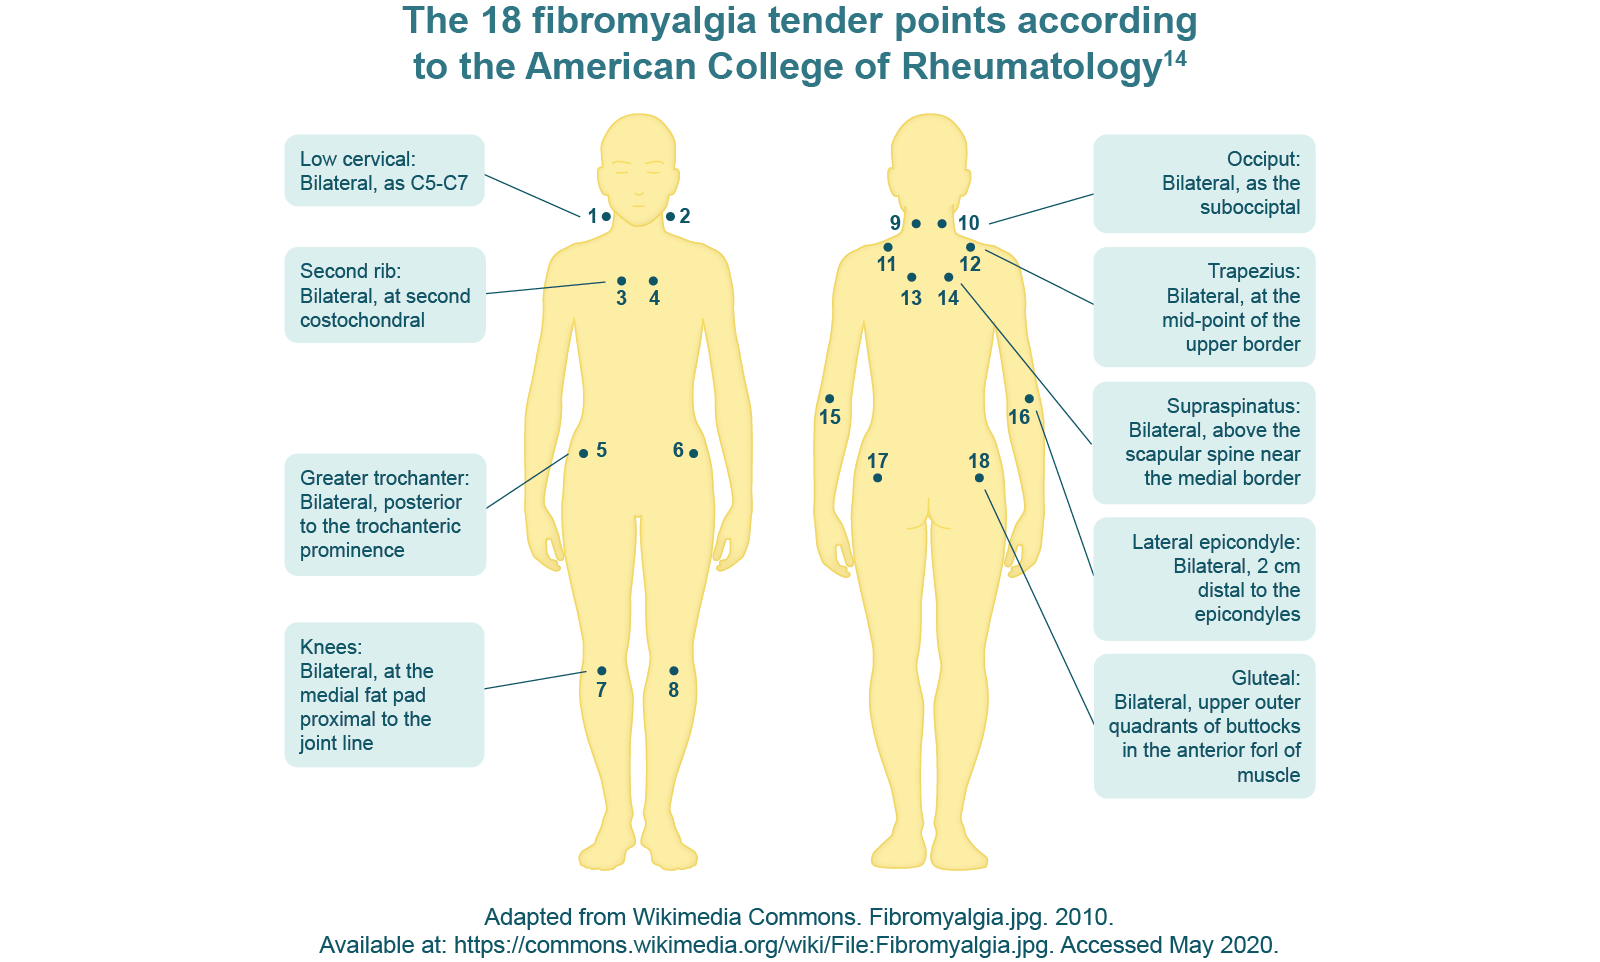 The 18 fibromyalgia tender points according to the american college of rheumatology